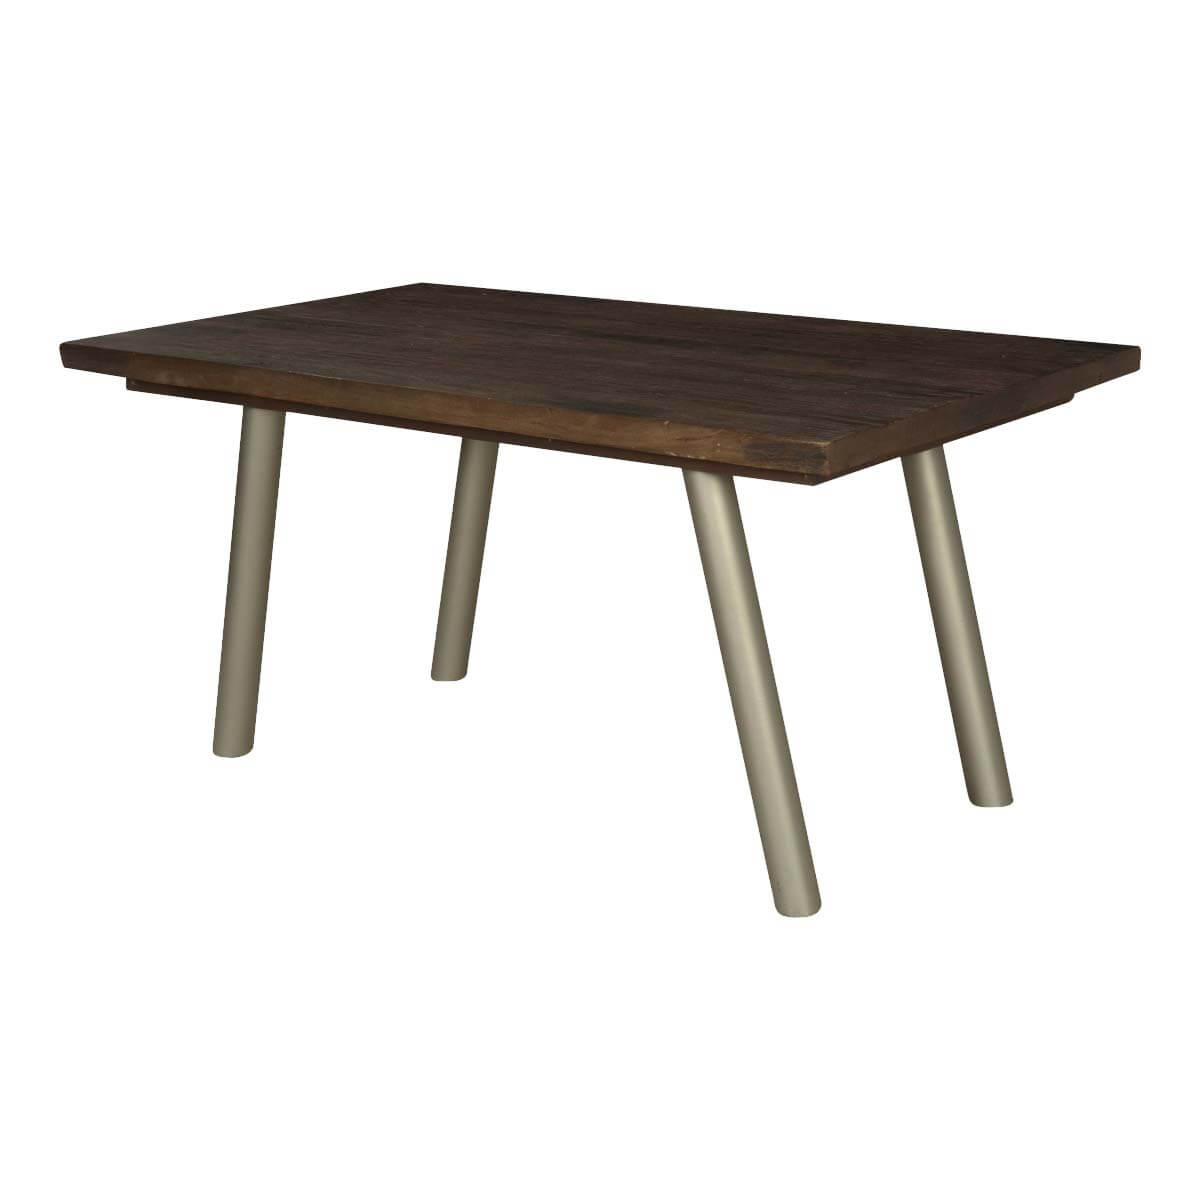 Modern Frontier Mango Wood amp Iron Rustic 63 Dining Table : 74143 from www.sierralivingconcepts.com size 1200 x 1200 jpeg 60kB